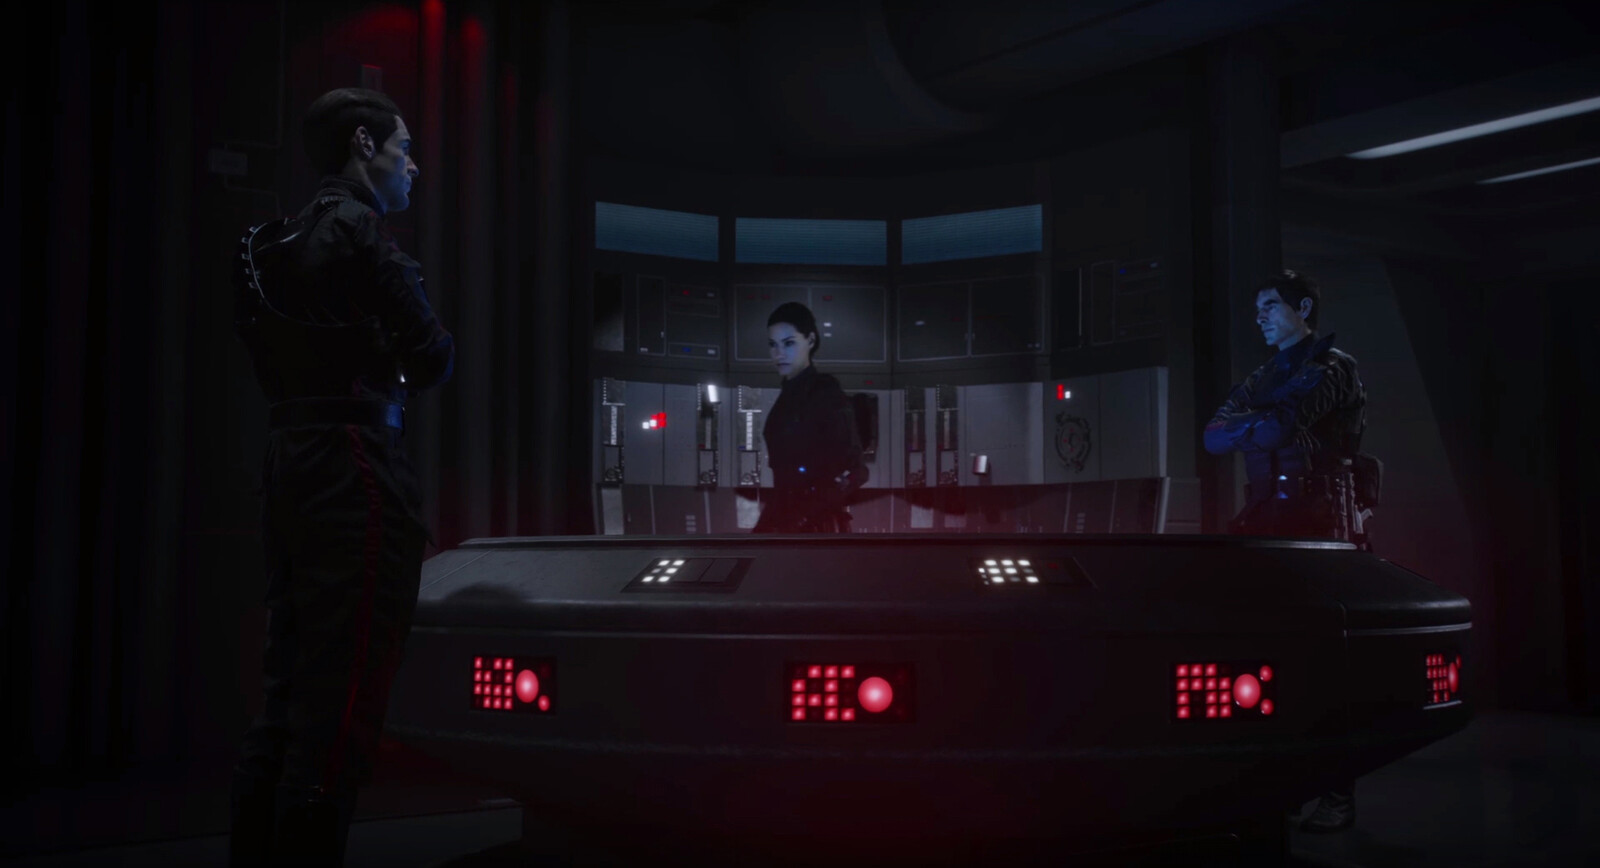 I also made the holotable in the center, and the L shaped computers behind Iden.